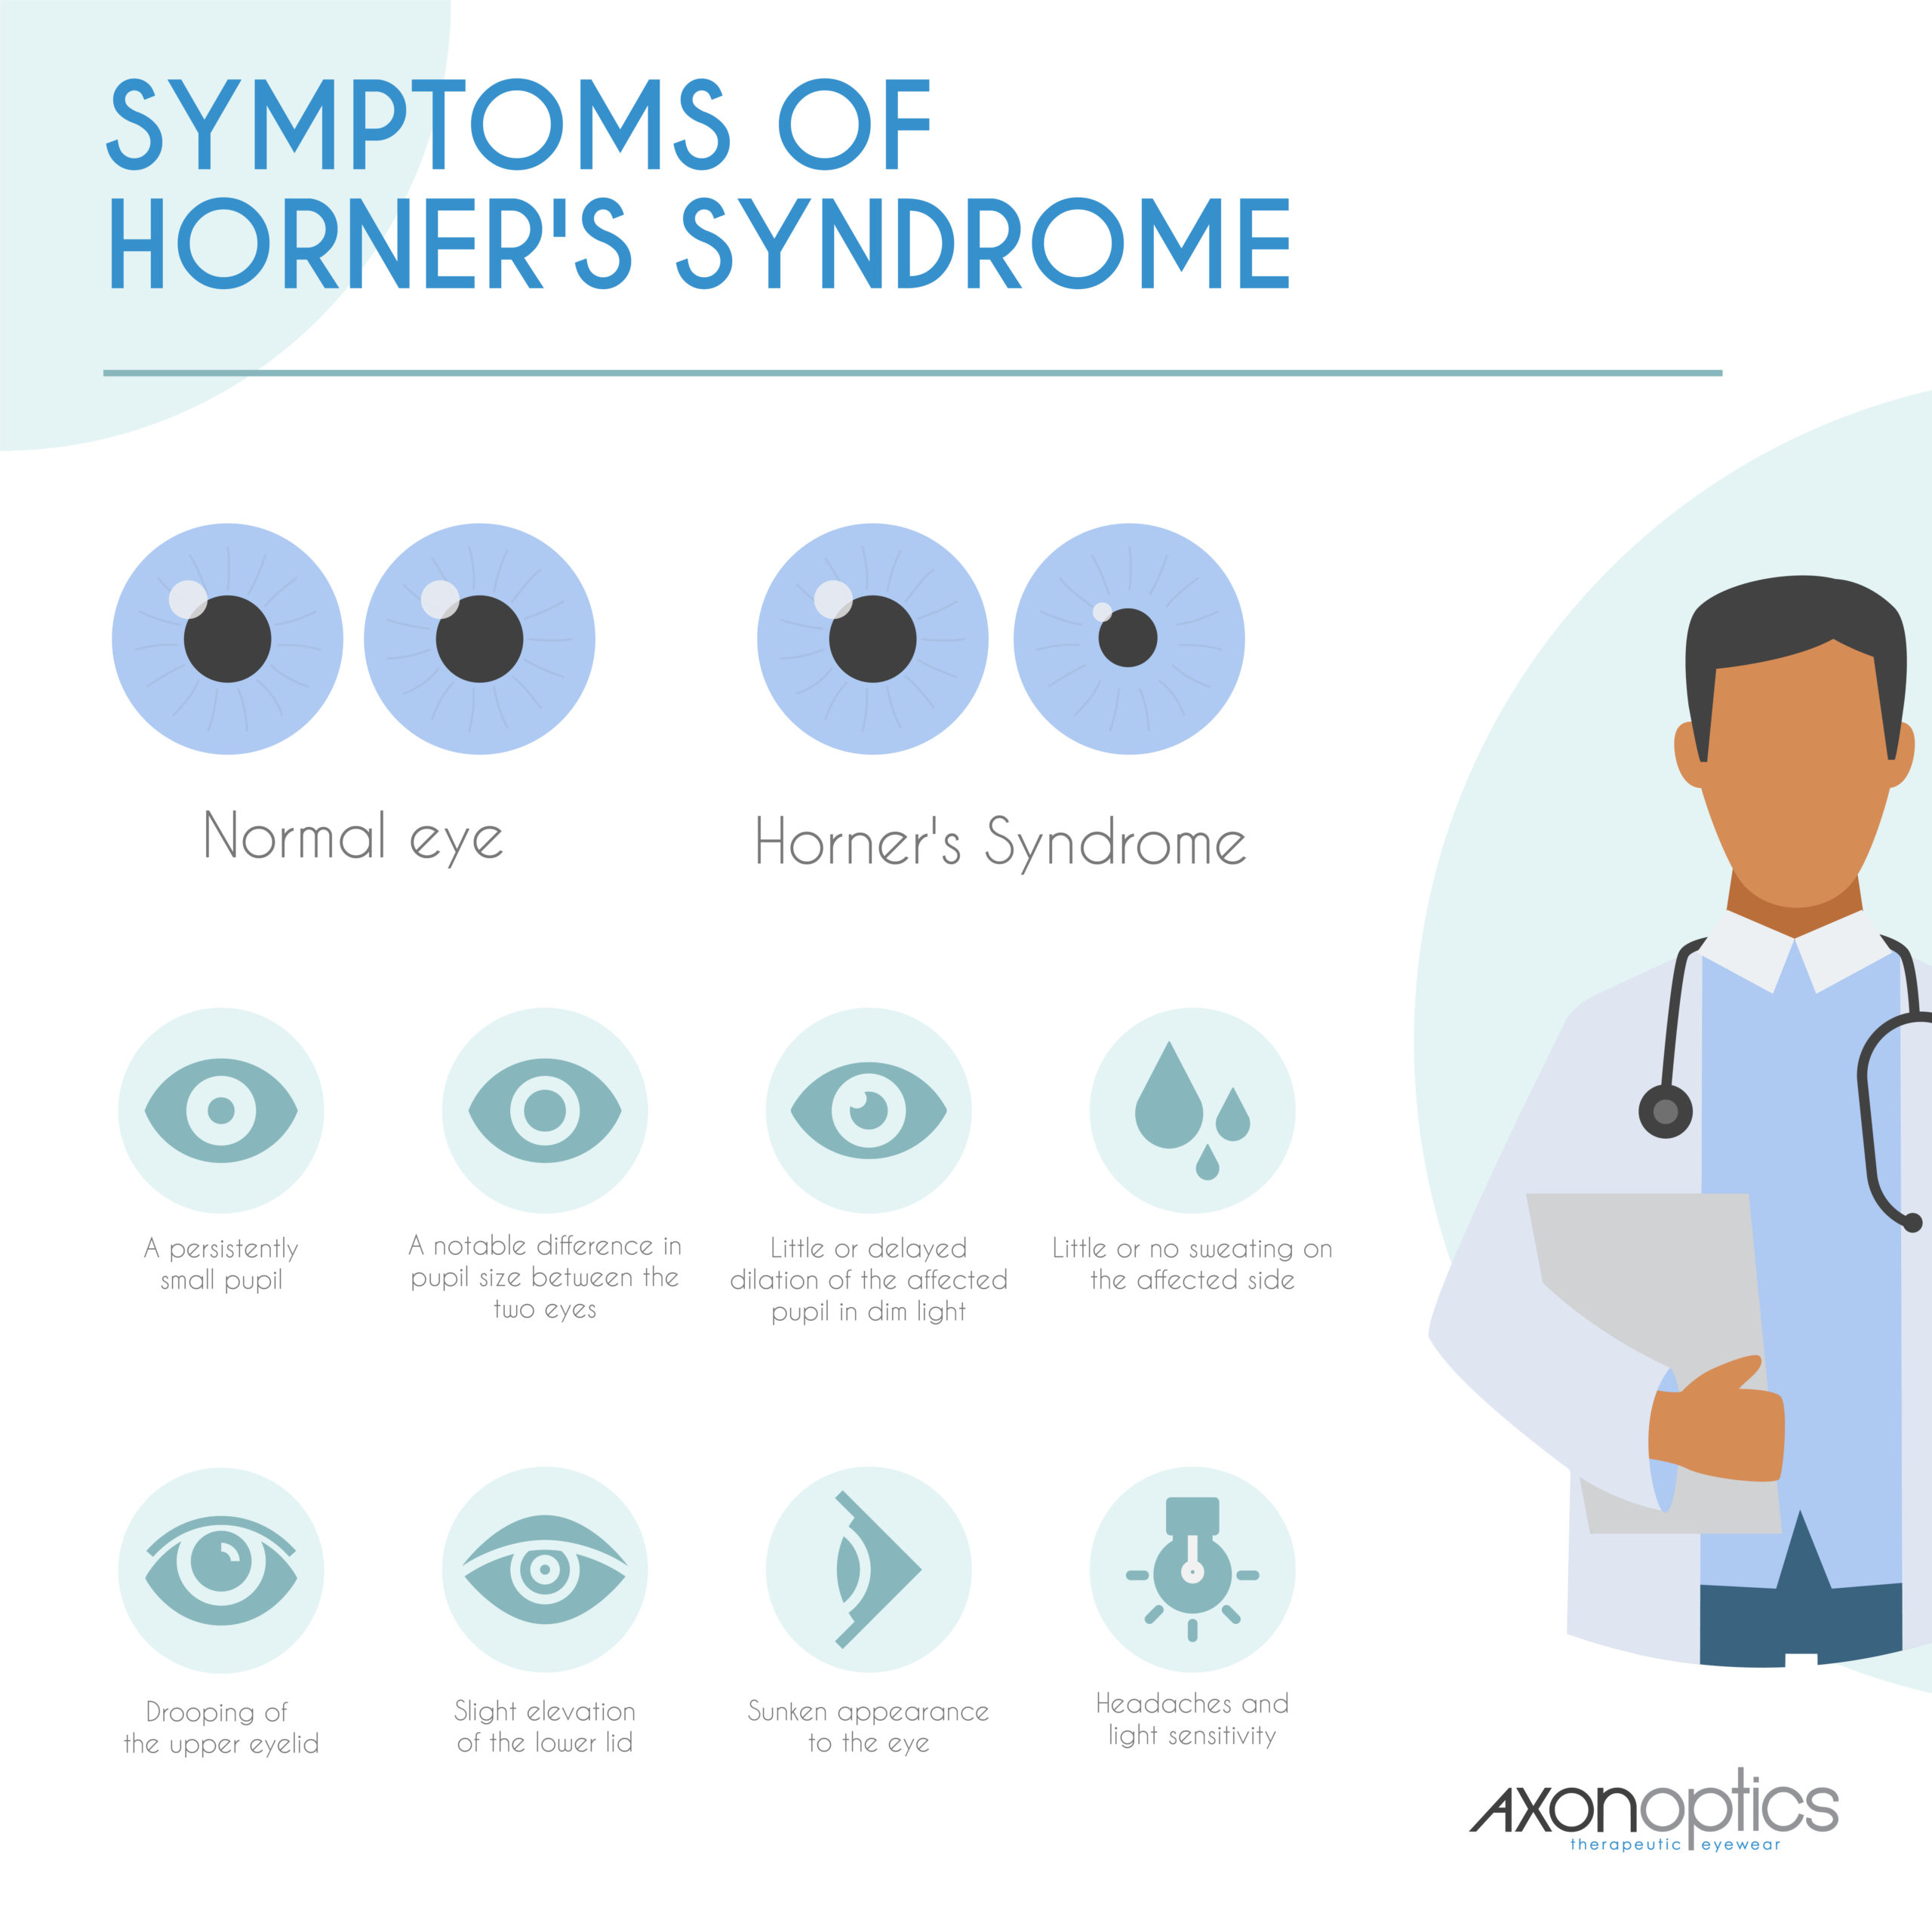 Symptoms of Horner's Syndrome